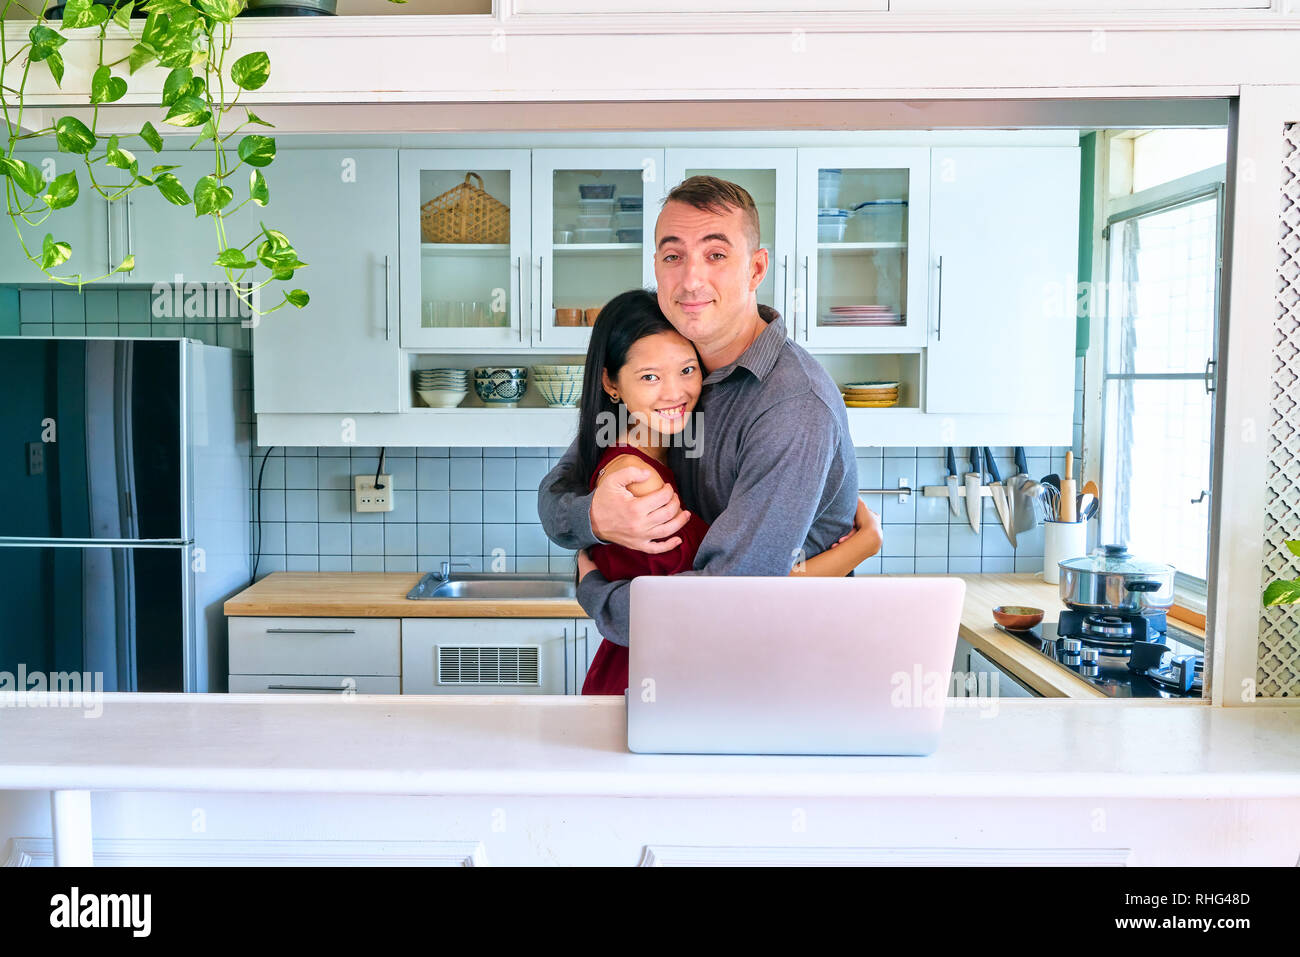 Lovely couple posing - hugging, smiling and looking at camera - Stock Image